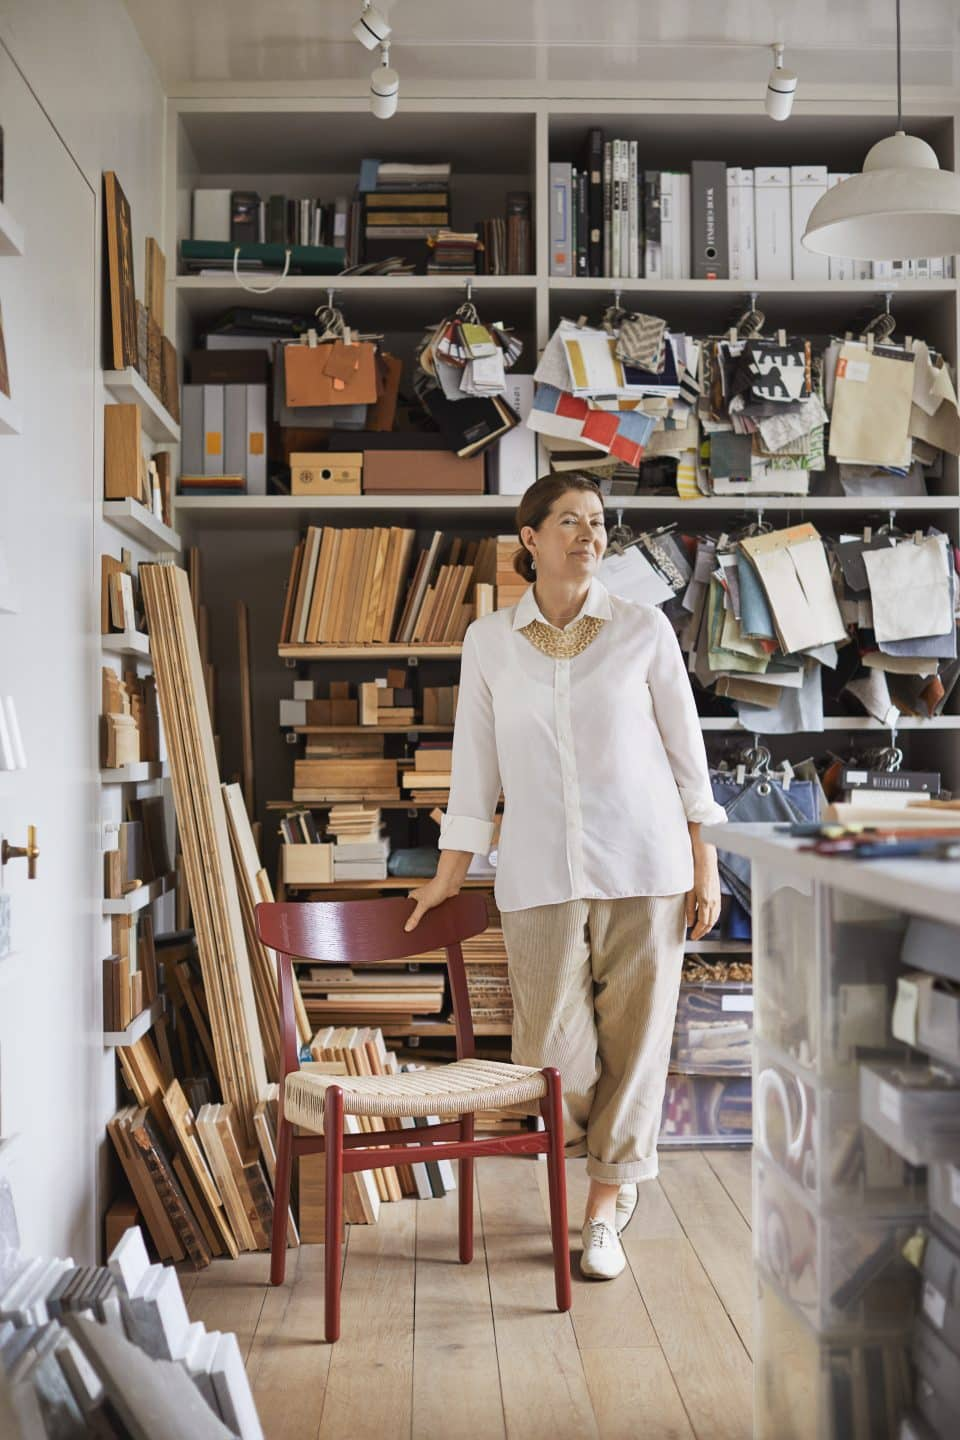 Design Icon Ilse Crawford on Her Colorful New Hans Wegner Chairs